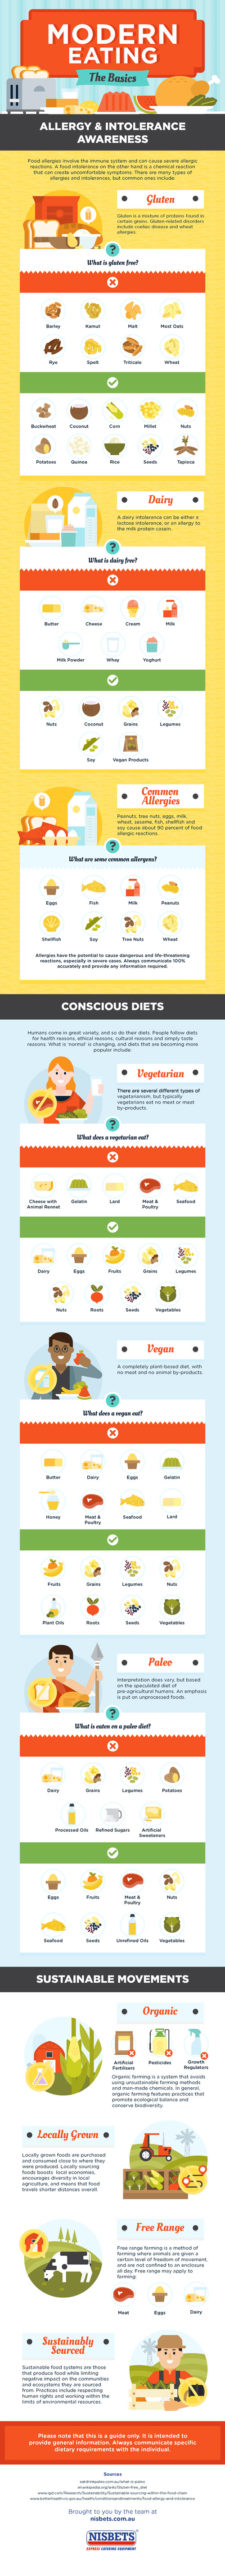 The Basics of Modern Eating [Infographic]